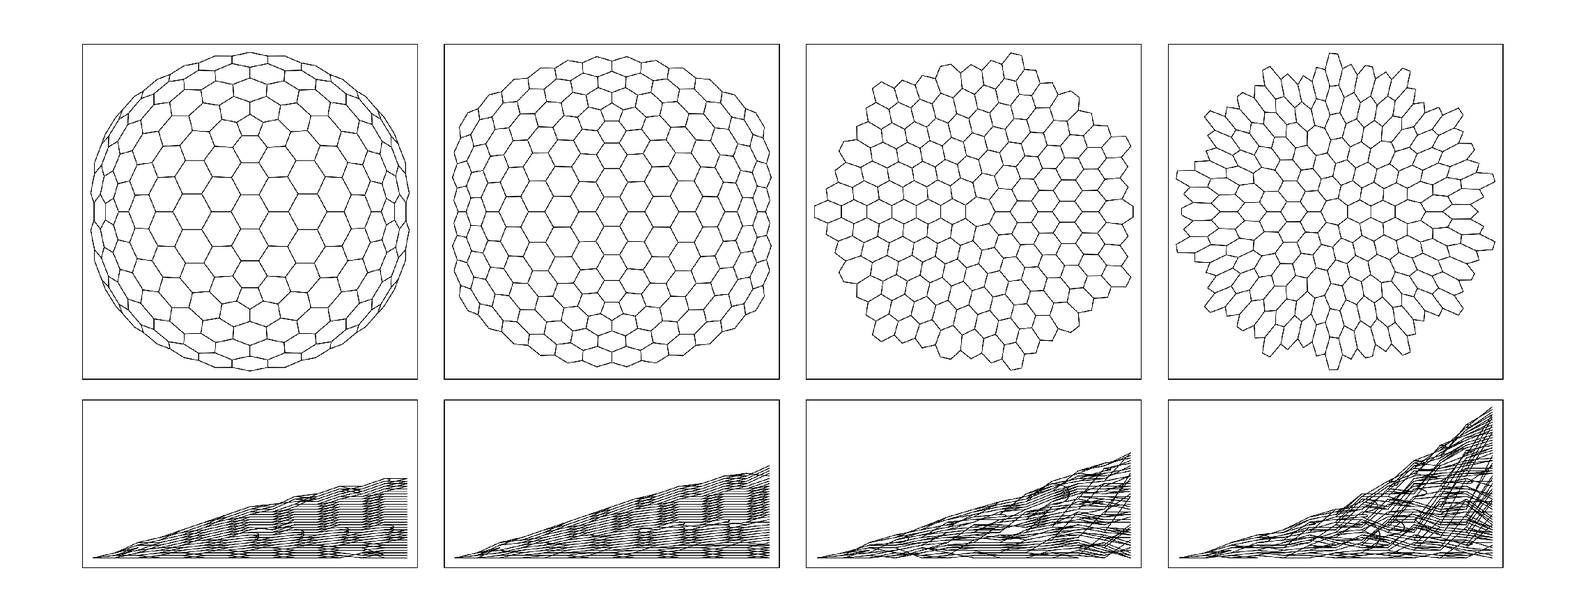 Networks with various limiting curvatures